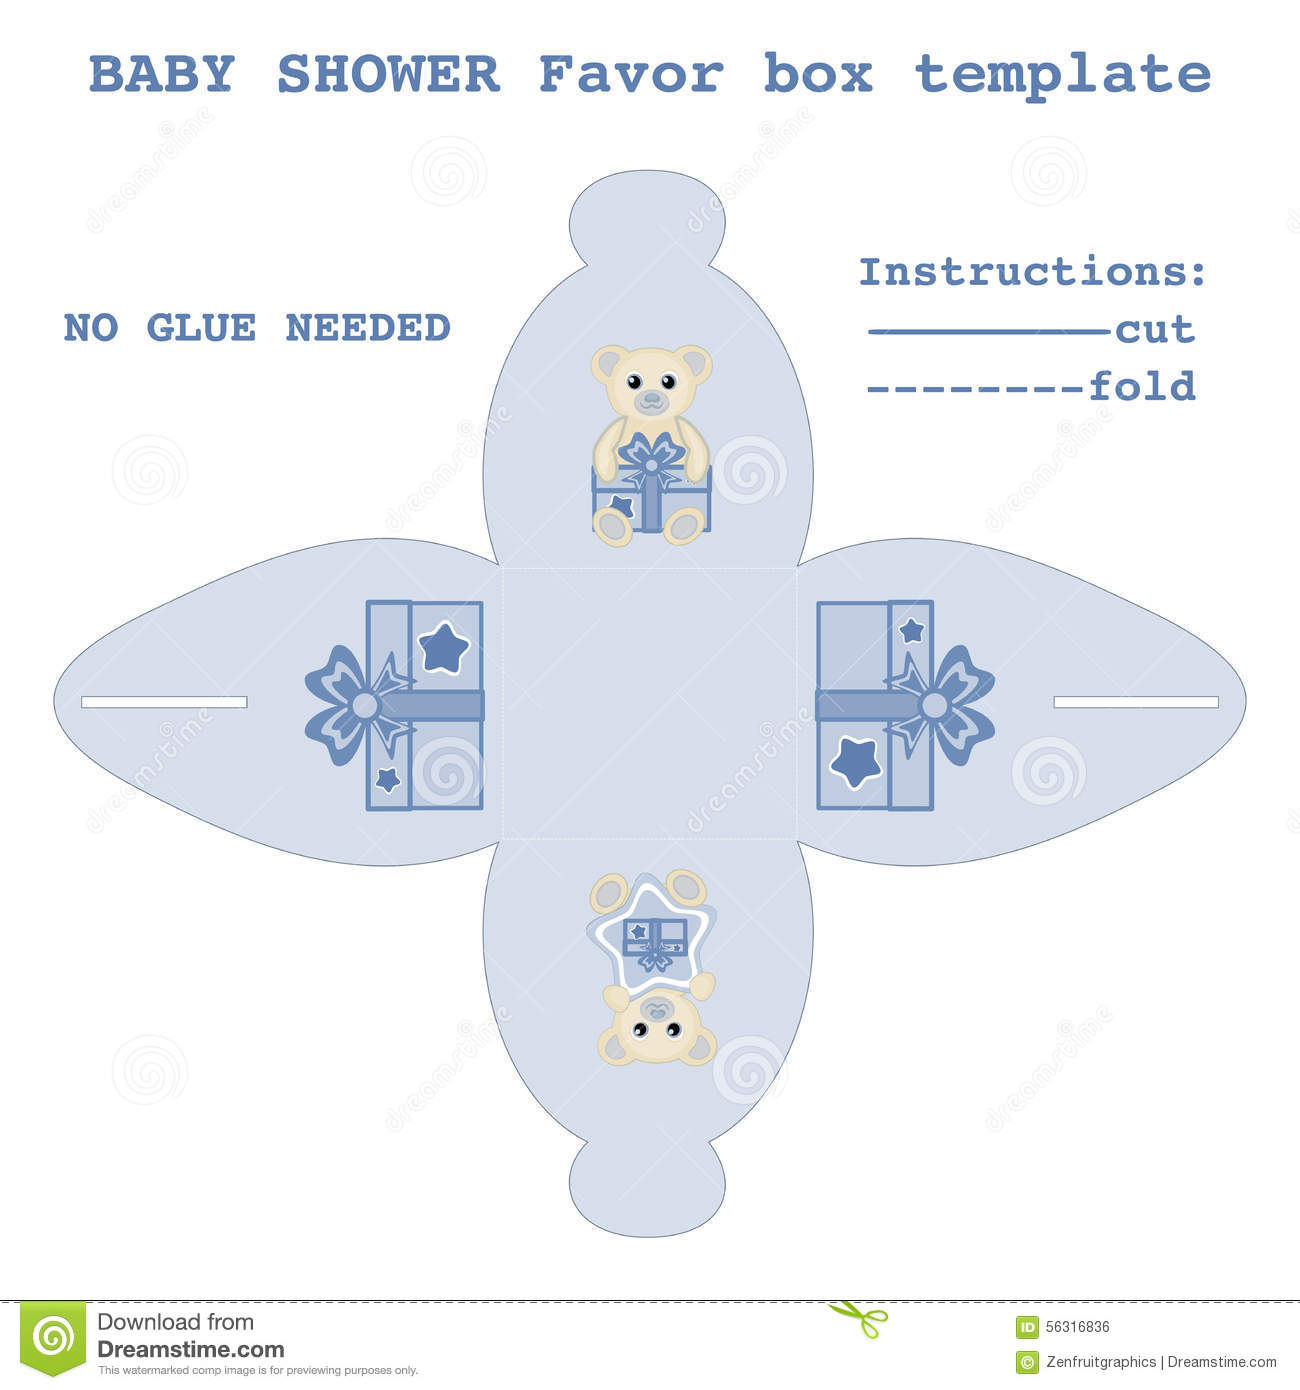 Diy baby shower favor boxes - Baby Box Boy Cut Design Diy Favor Gift Illustration Newborn Pattern Shower